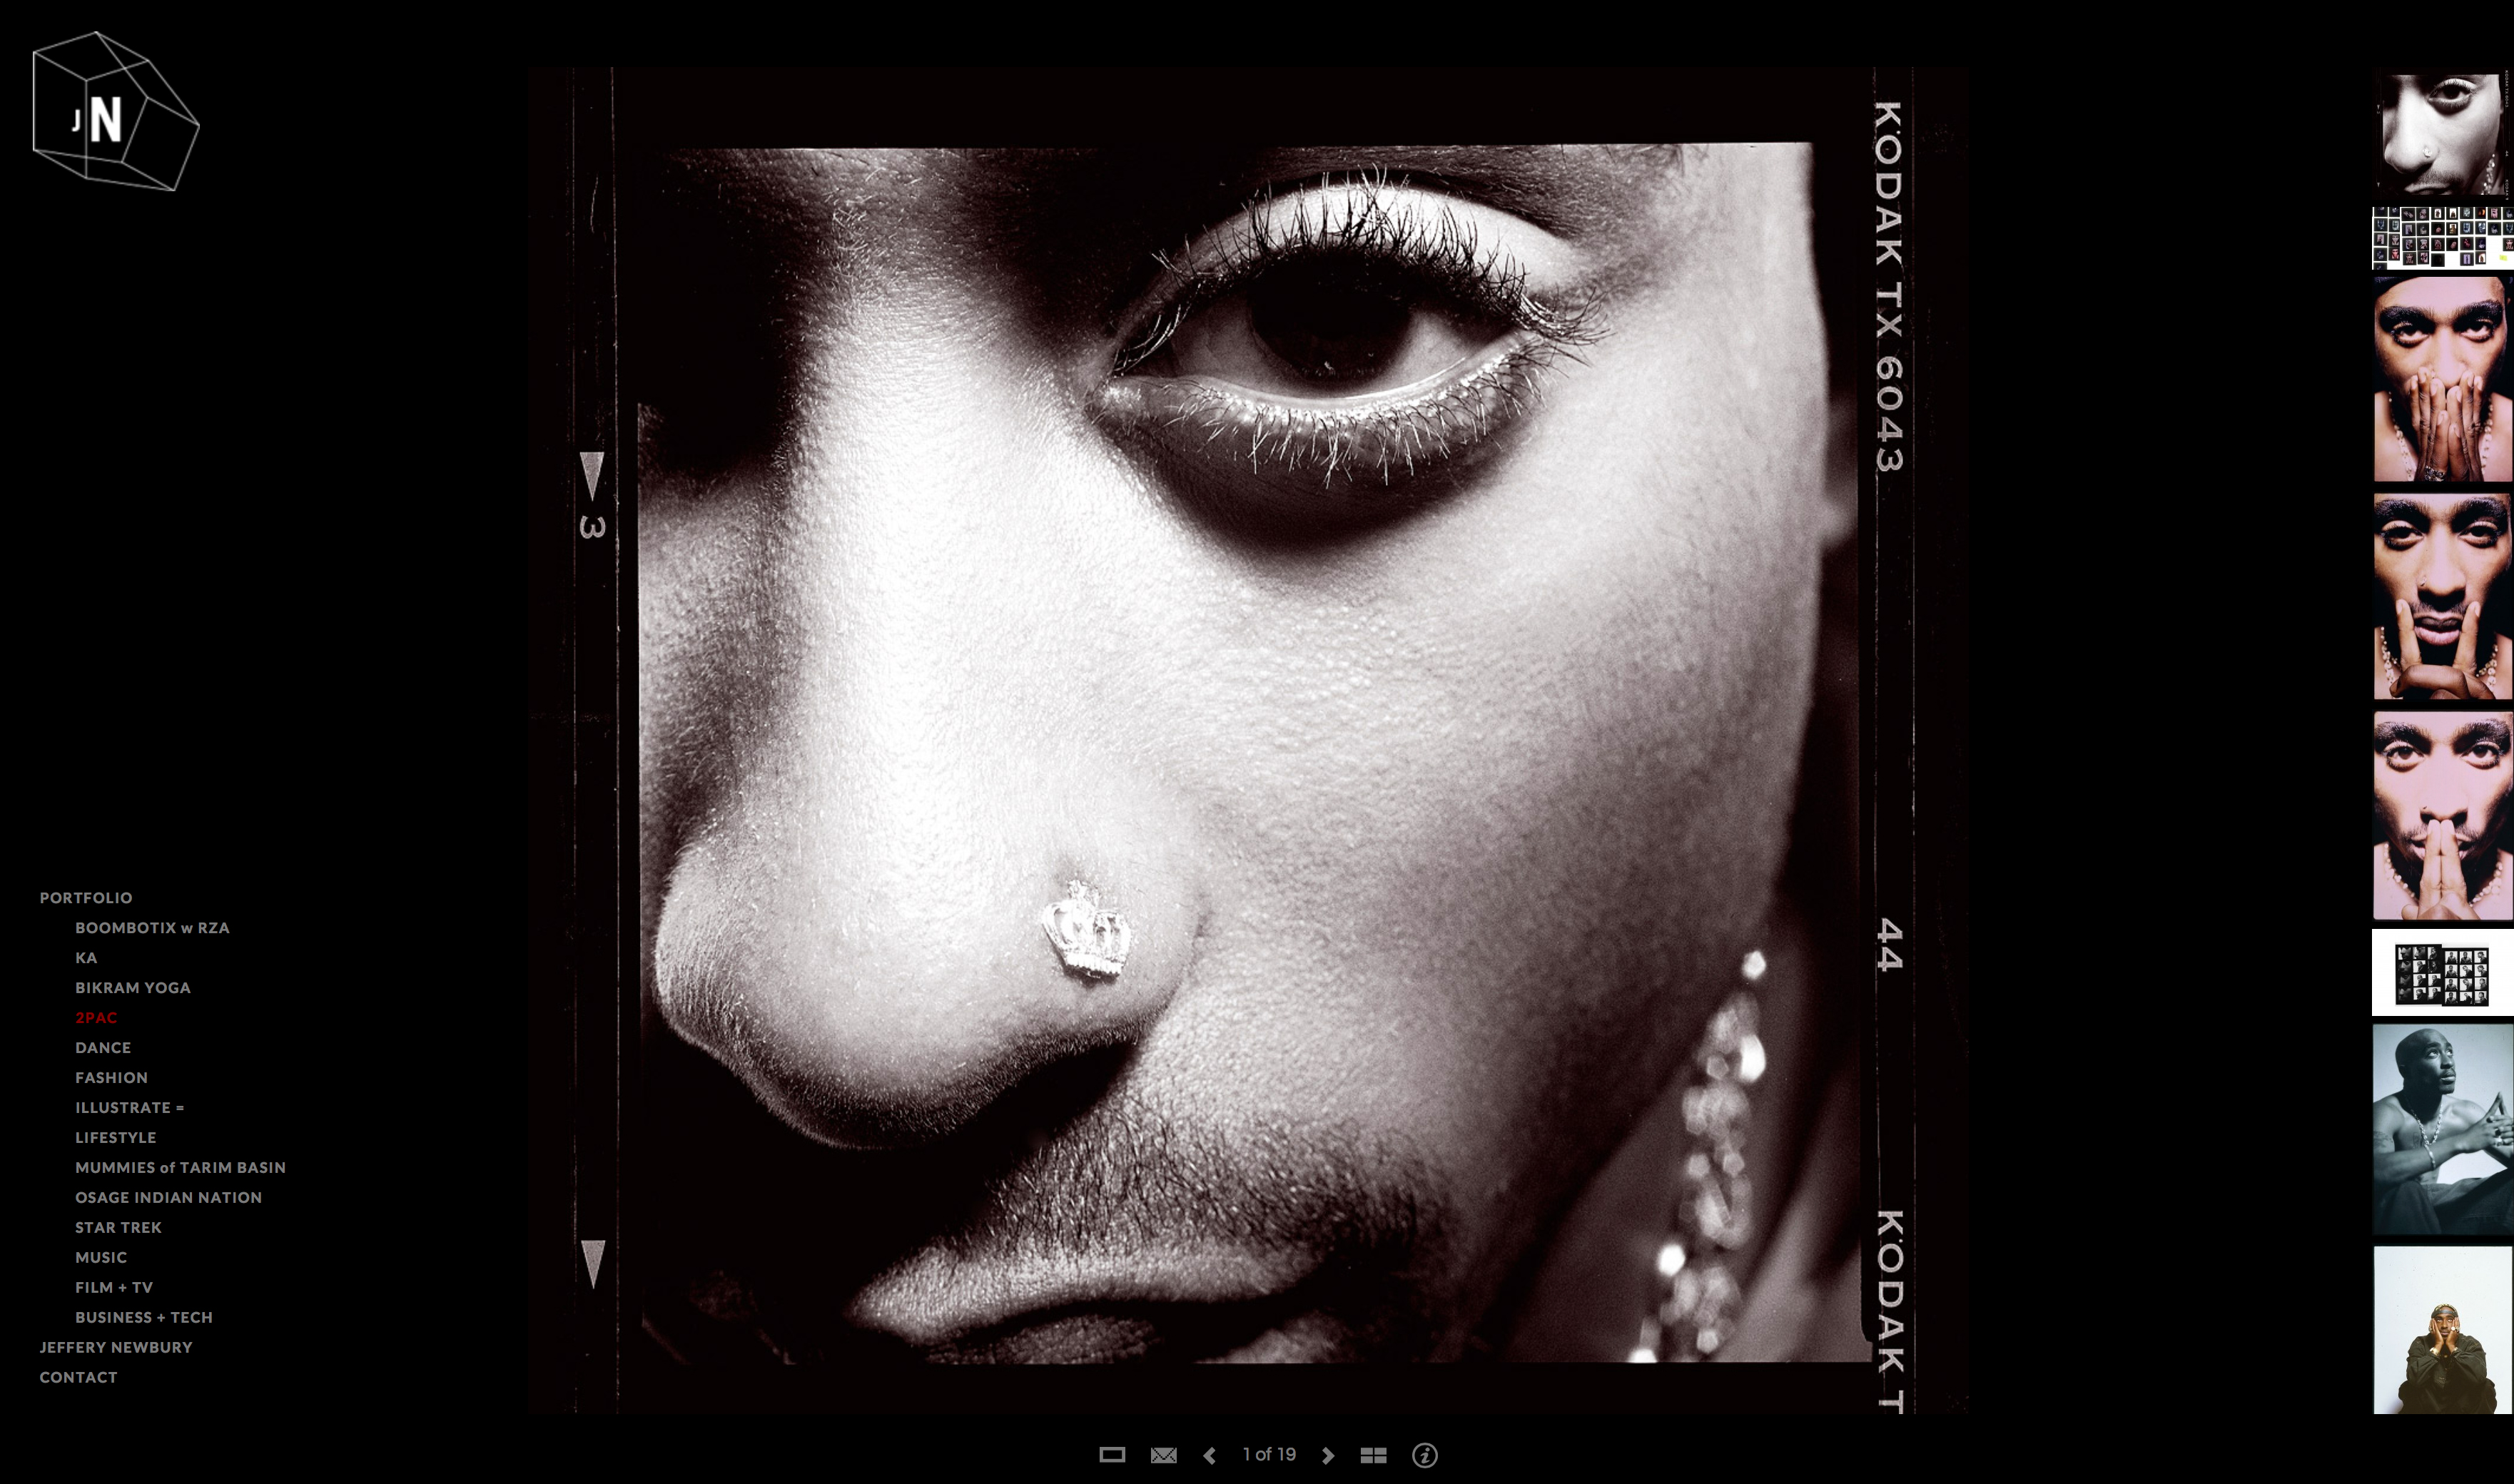 Dramatic portraits of Tupac Shakur very close to his face